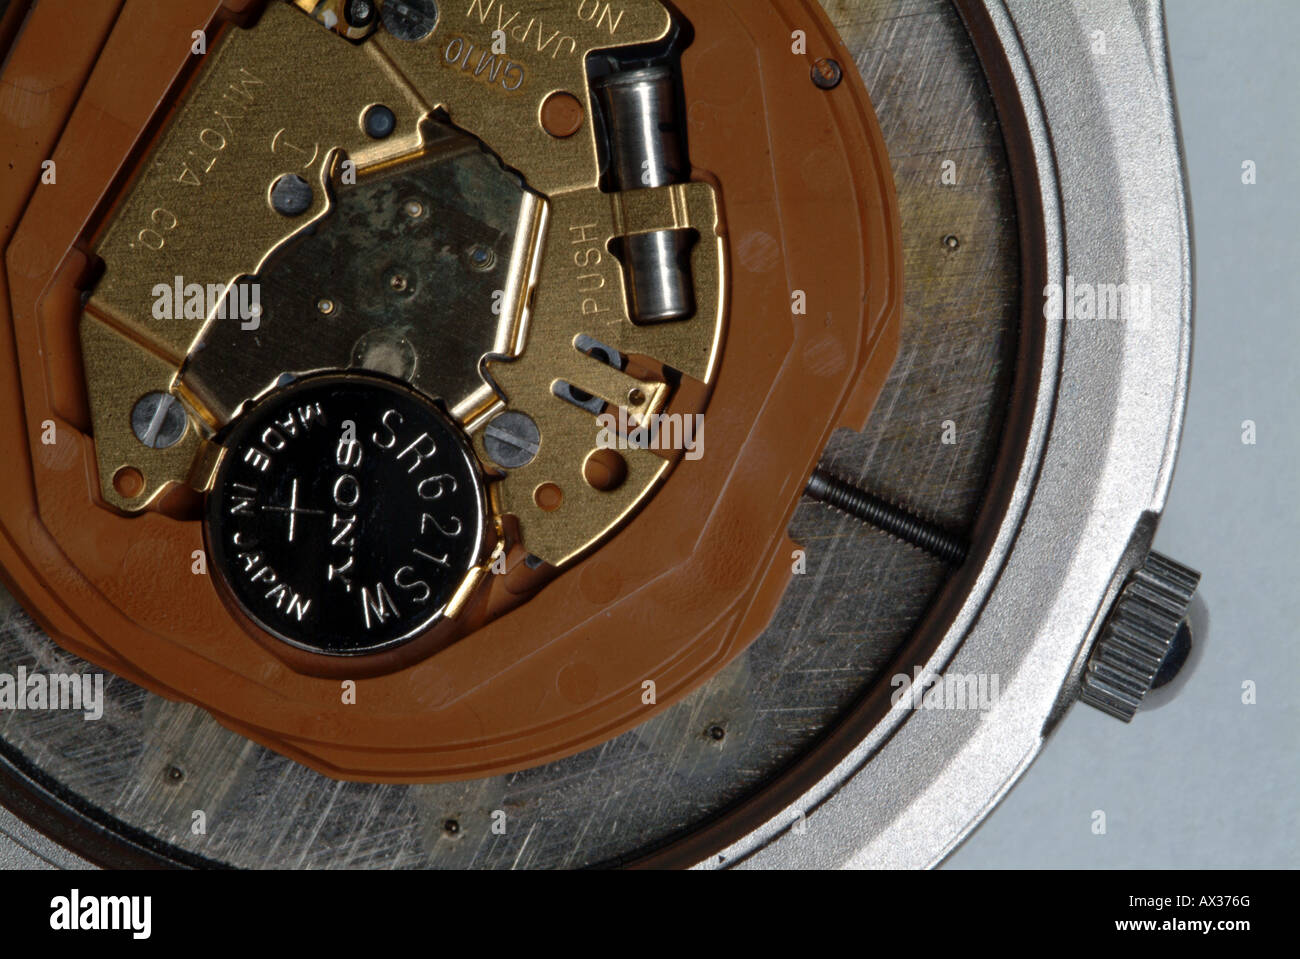 Lithium cell in a digital wrist watch - Stock Image